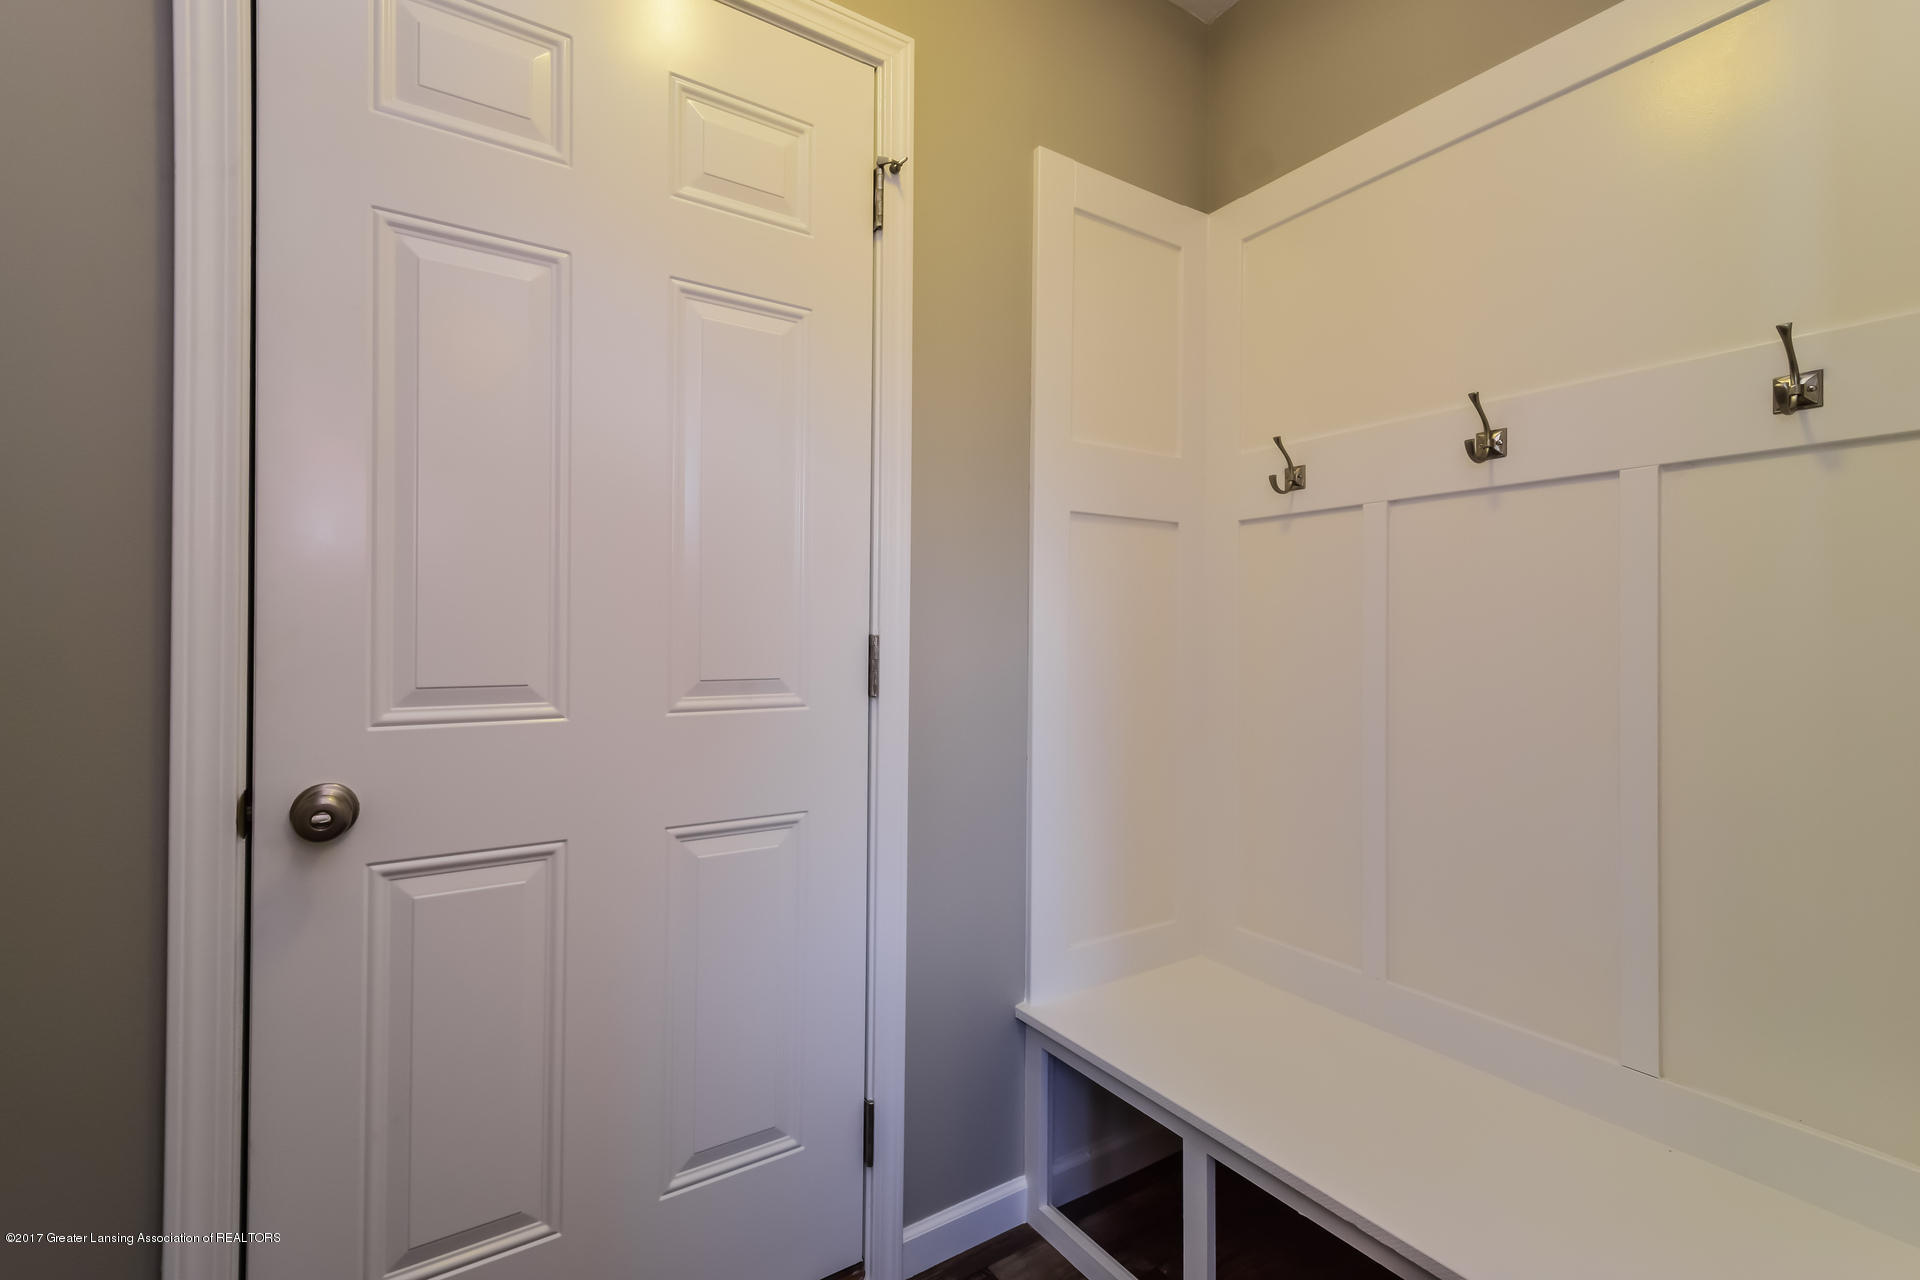 960 Pennine Ridge Way - Mudroom MDE017-E2070-1 - 14